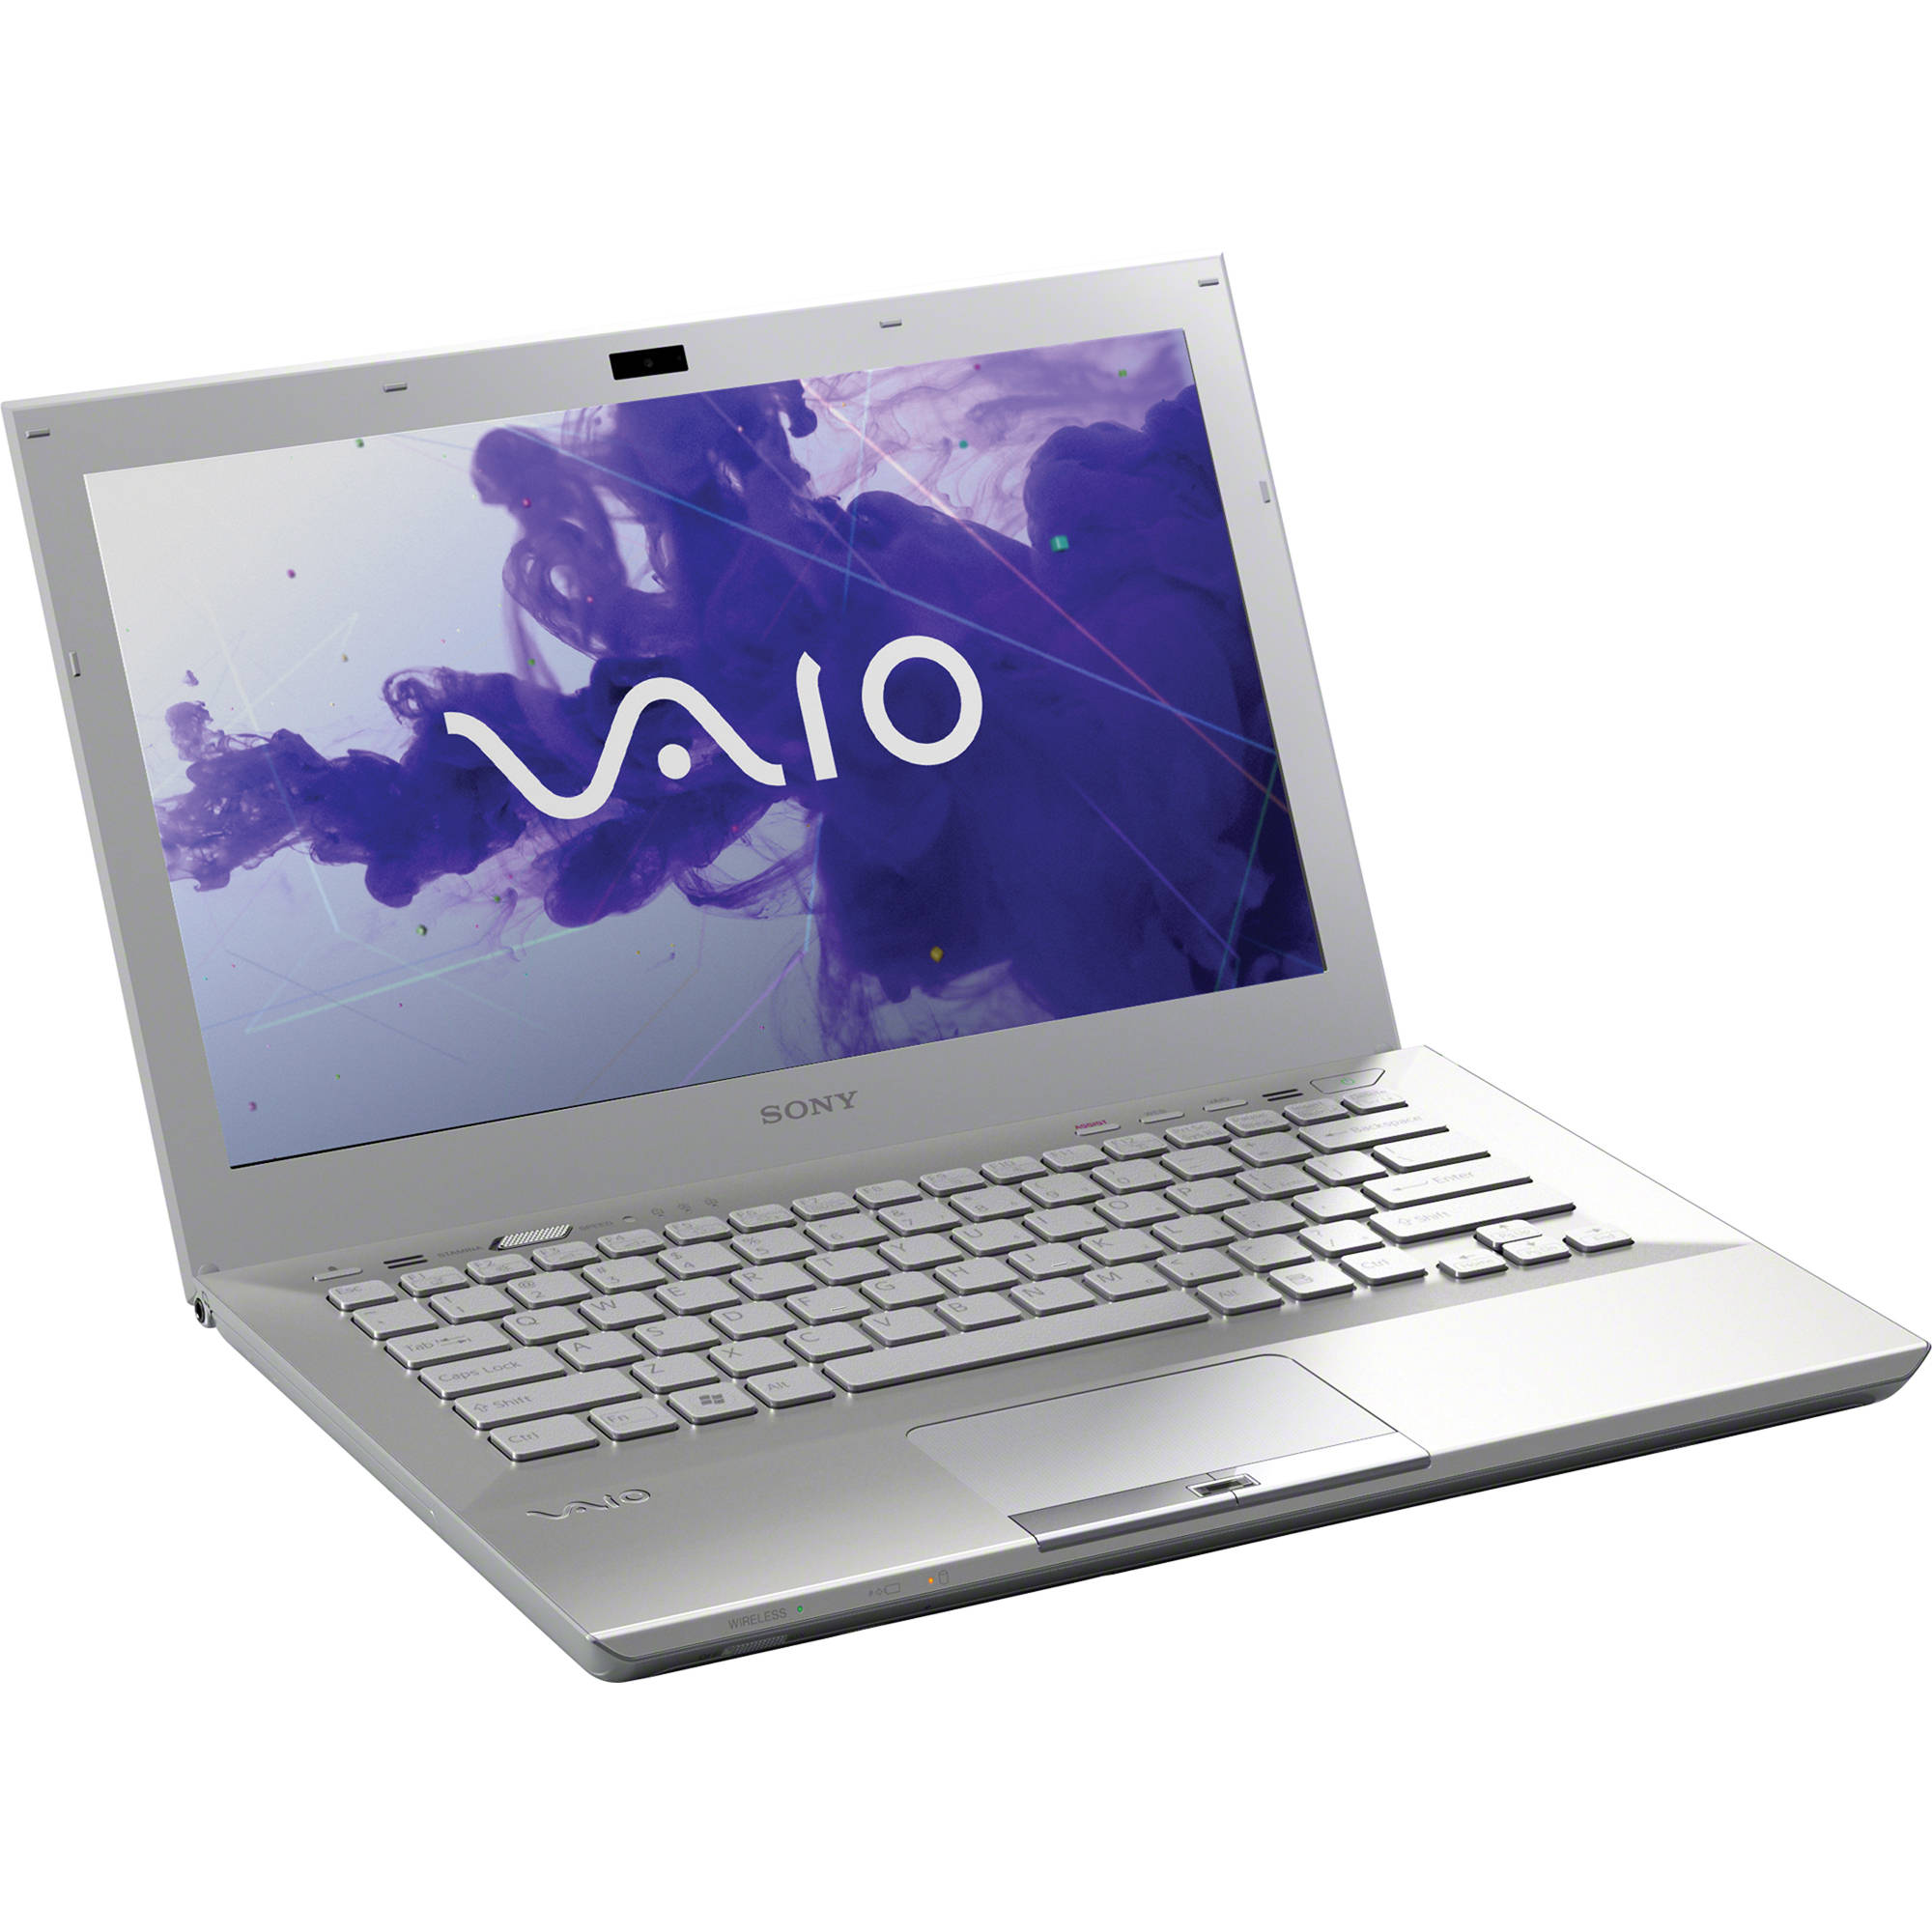 Sony Vaio VPCSA41FX/BI Intel WiDi Drivers for Windows XP